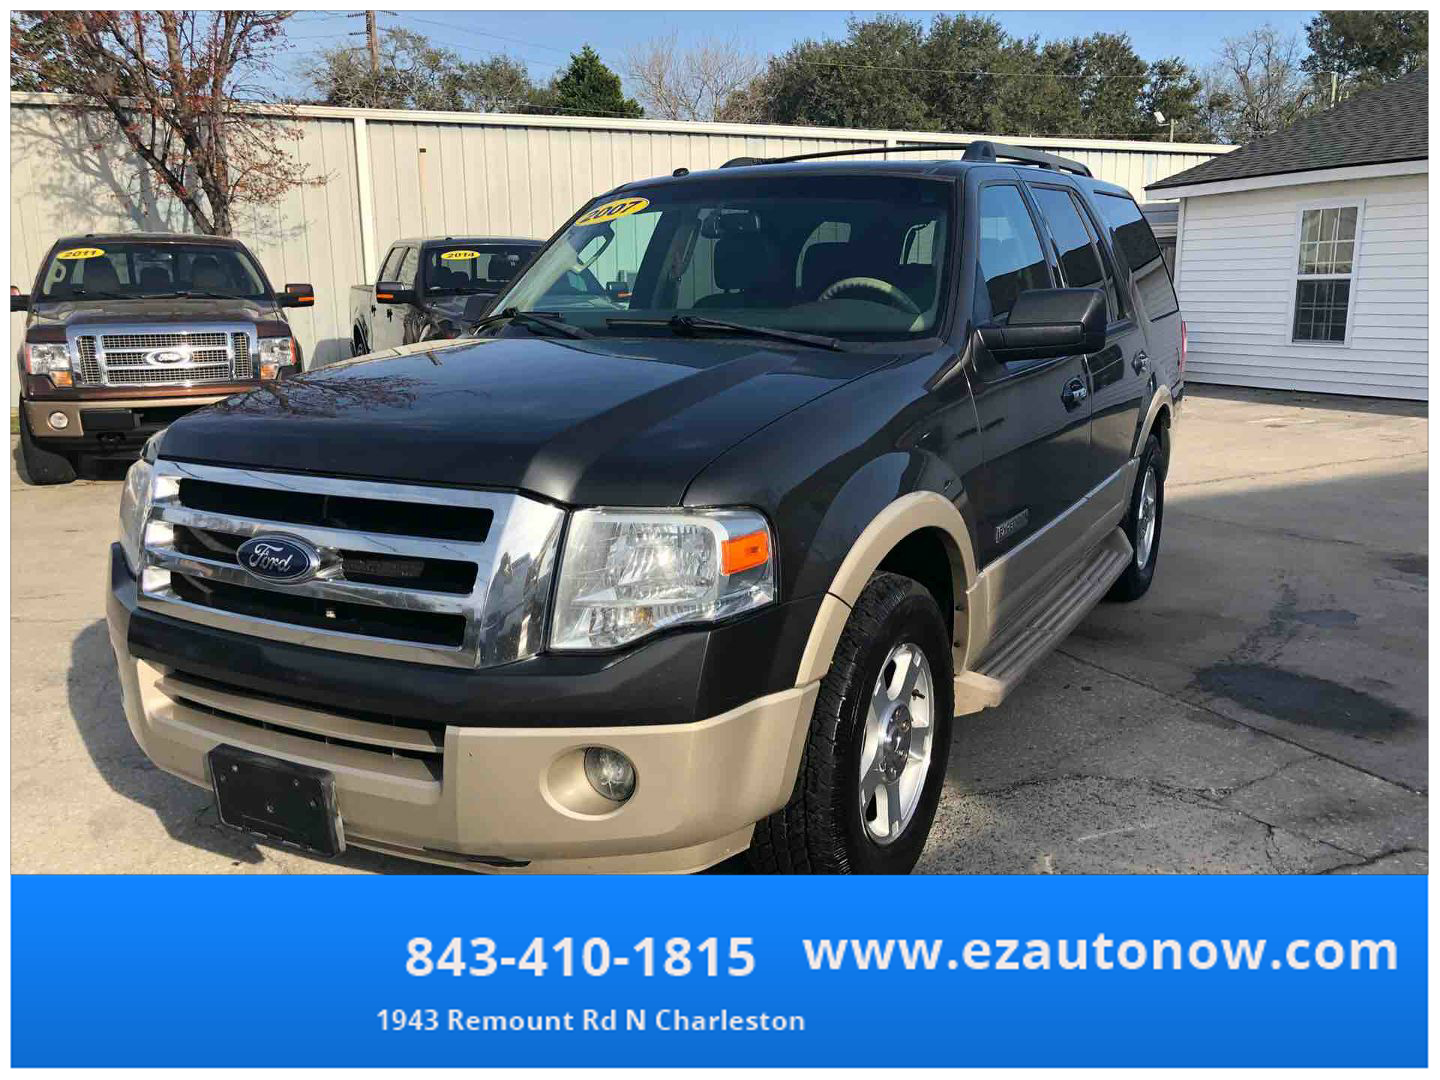 Sold Ford Expedition Eddie Bauer In Charleston - Ford expedition invoice price